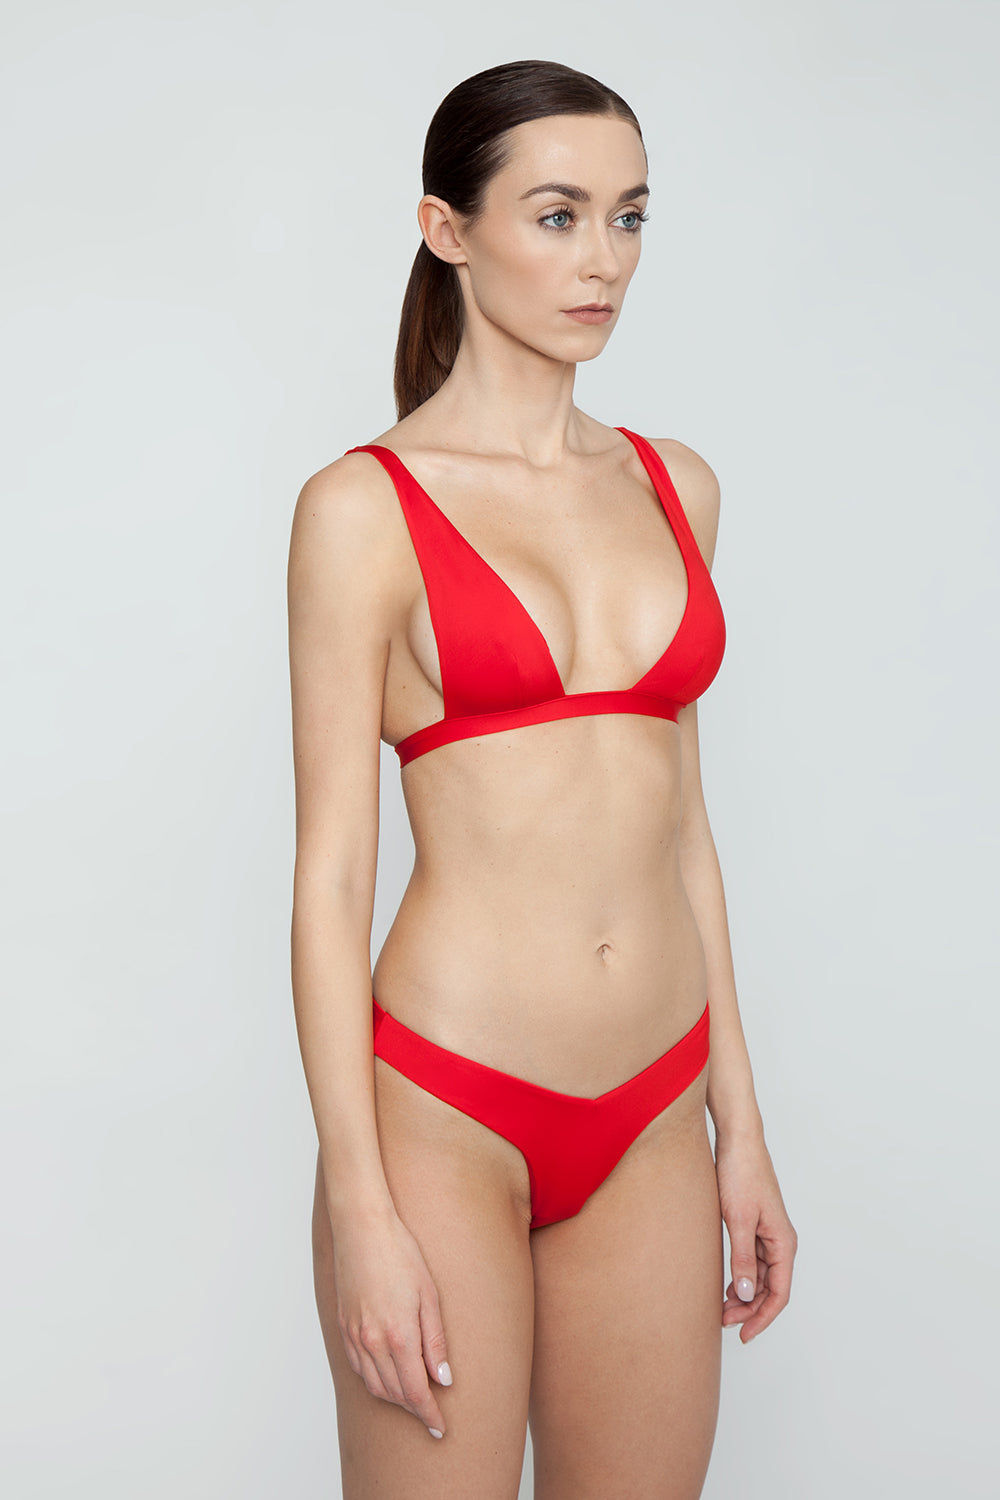 MONICA HANSEN BEACHWEAR Babe Watch Long Triangle Bikini Top - Red Bikini Top |  Red| Monica Hansen Babe Watch Long Triangle Bikini Top - Red. Features:  Small nickel colored metal clasp in black Double fabric on the inside instead of lining Italian fabric 85% Nylon 15% Elastane Manufactured in Italy Hand wash cold.  Dry Flat Side View